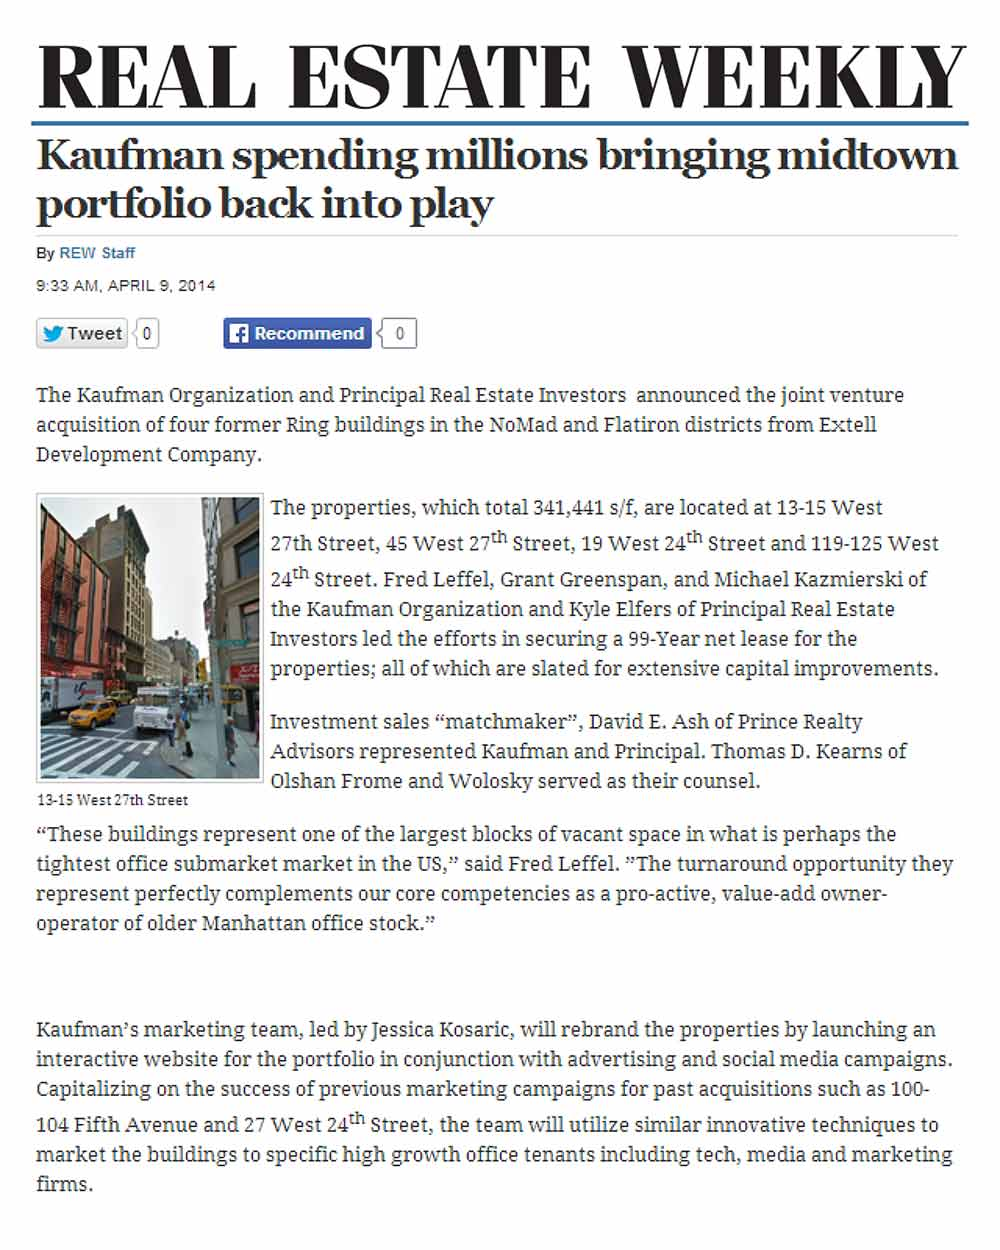 Real-Estate-Weekly-(Online),-Kaufman-spending-millions-bringing-midtown-.